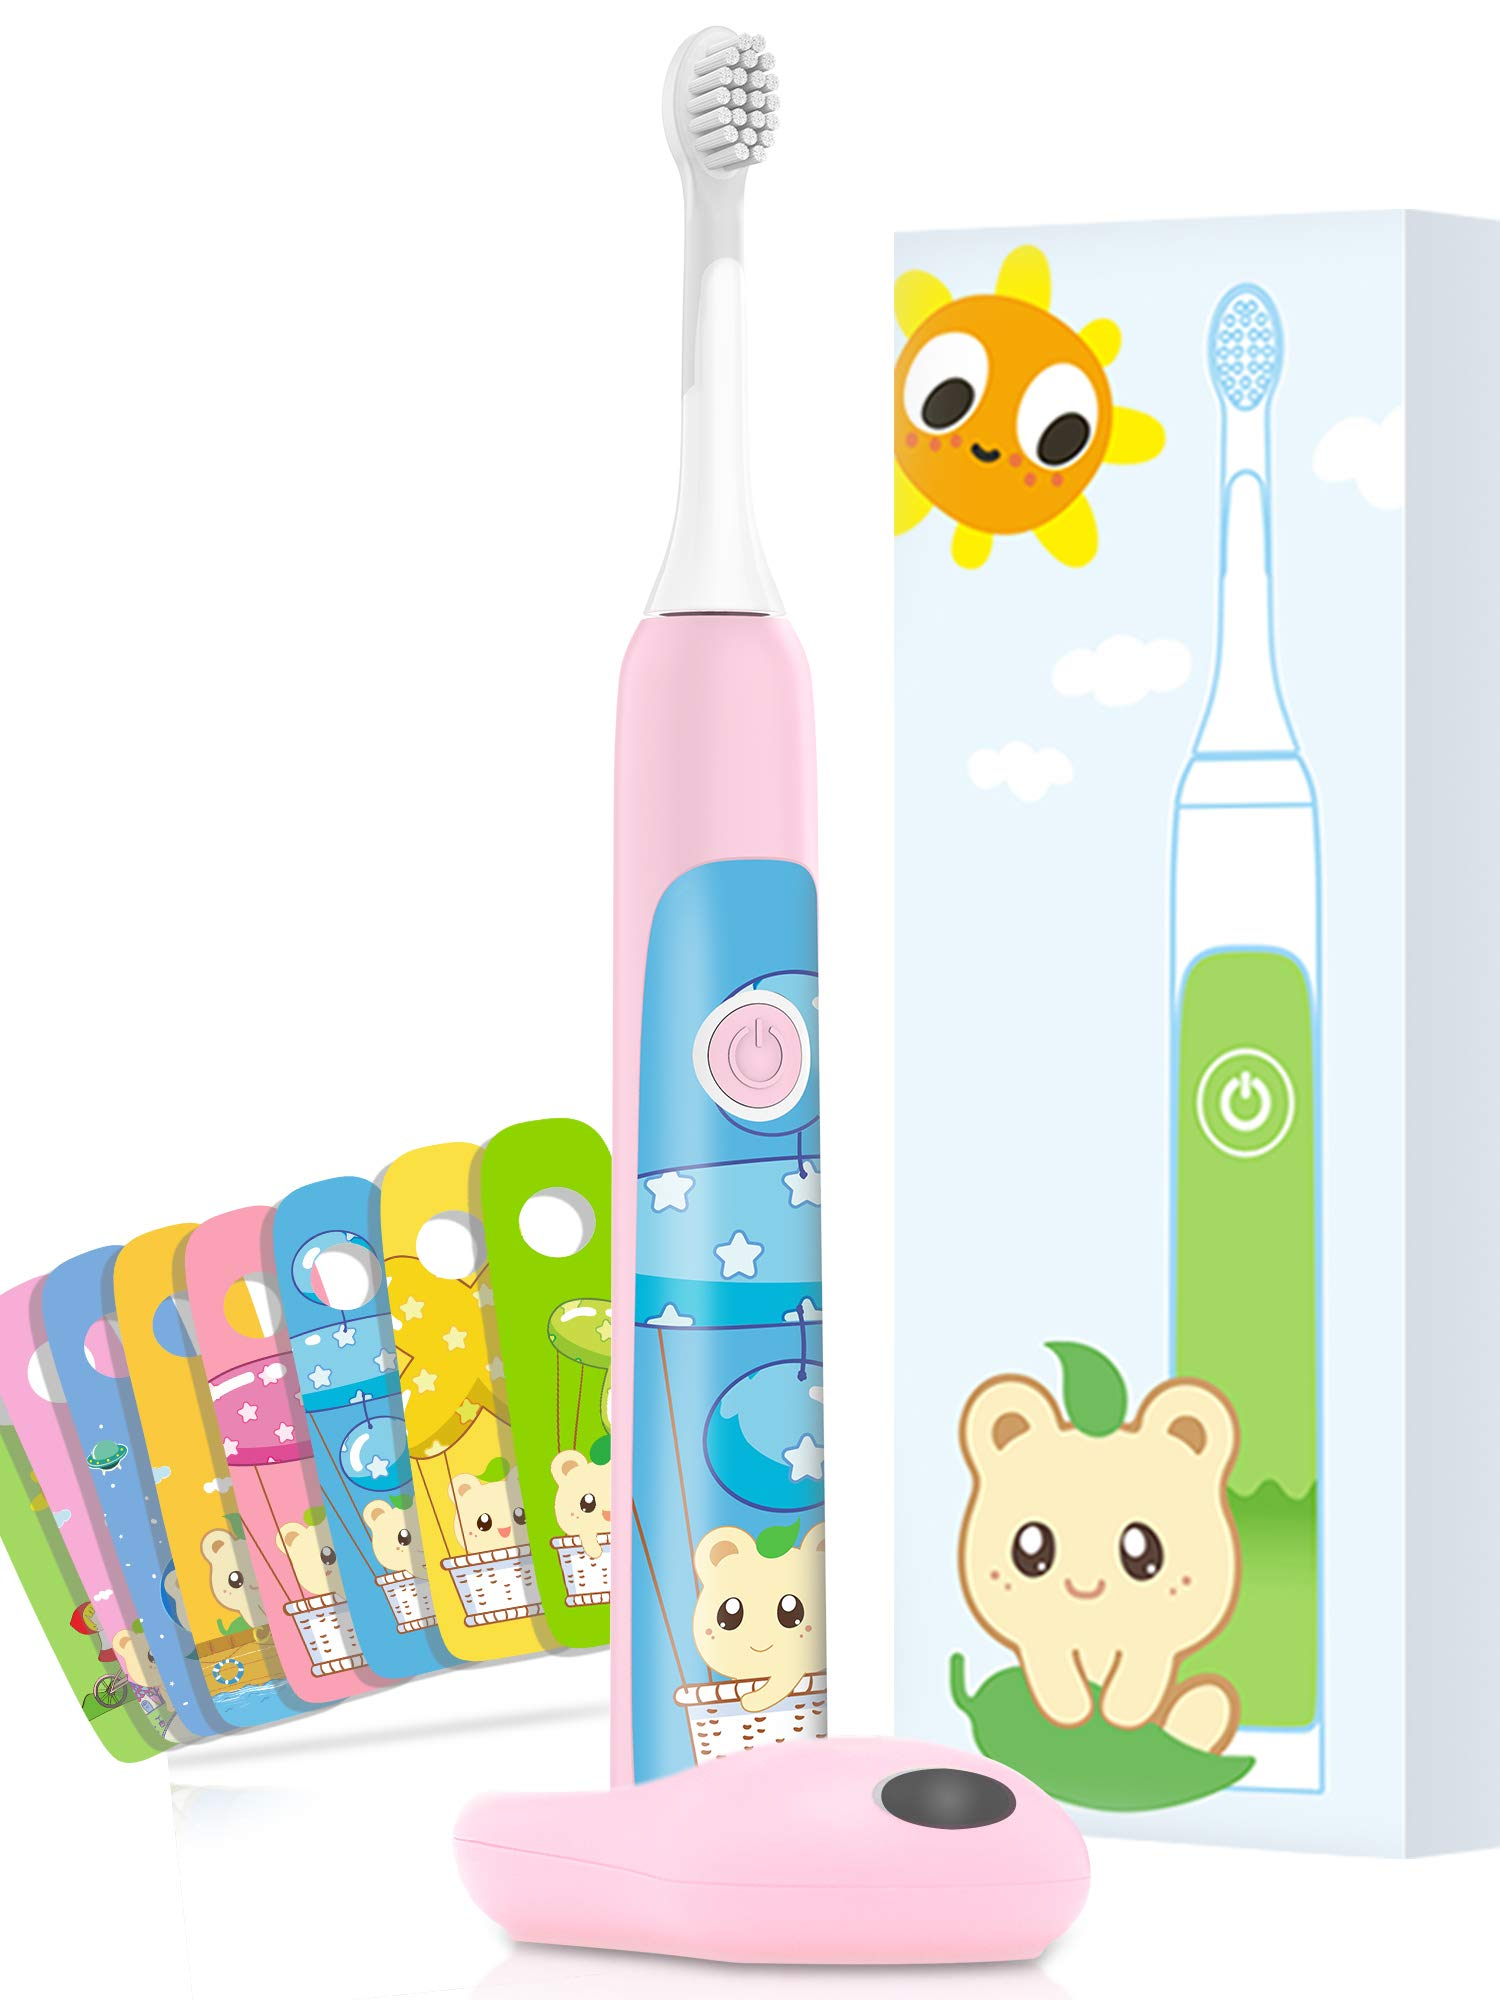 Aiwejay Kids SONIC Electric Toothbrush Reachable For ages 3-12,8 Cute Stickers, 3 Vibration Modes,Pink